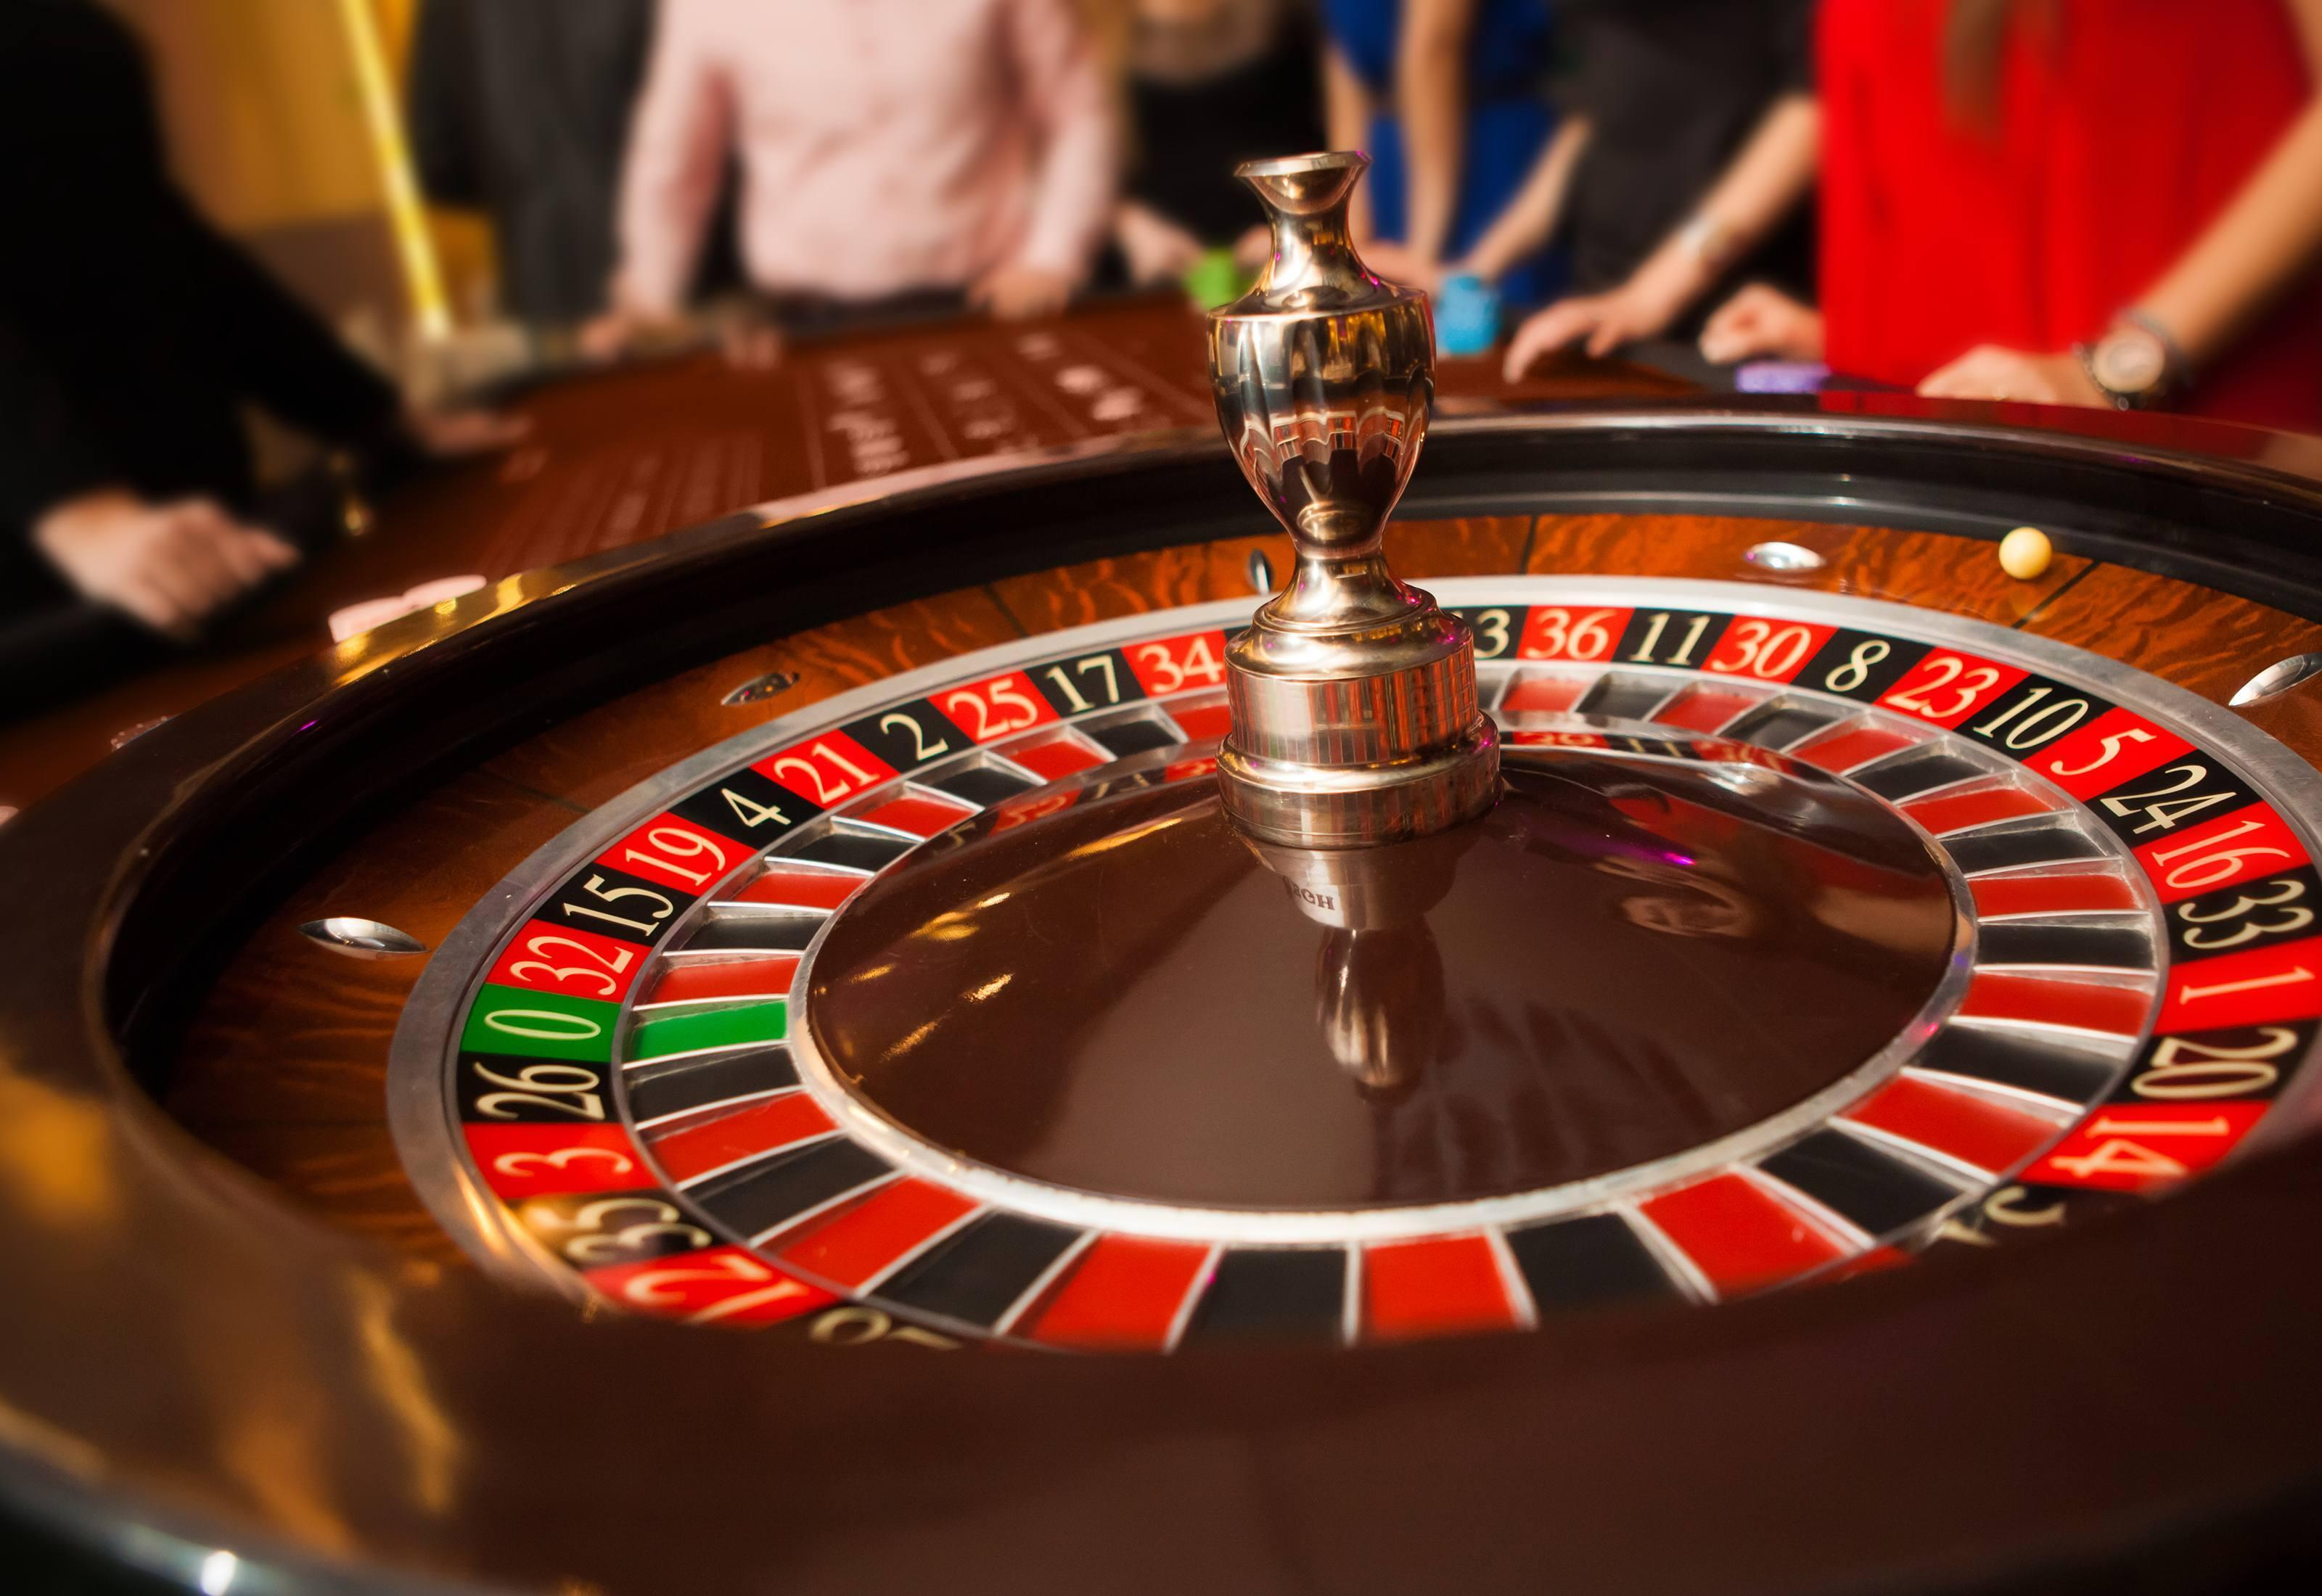 Hoteliers want tourist-only casinos in order to attract Chinese ...